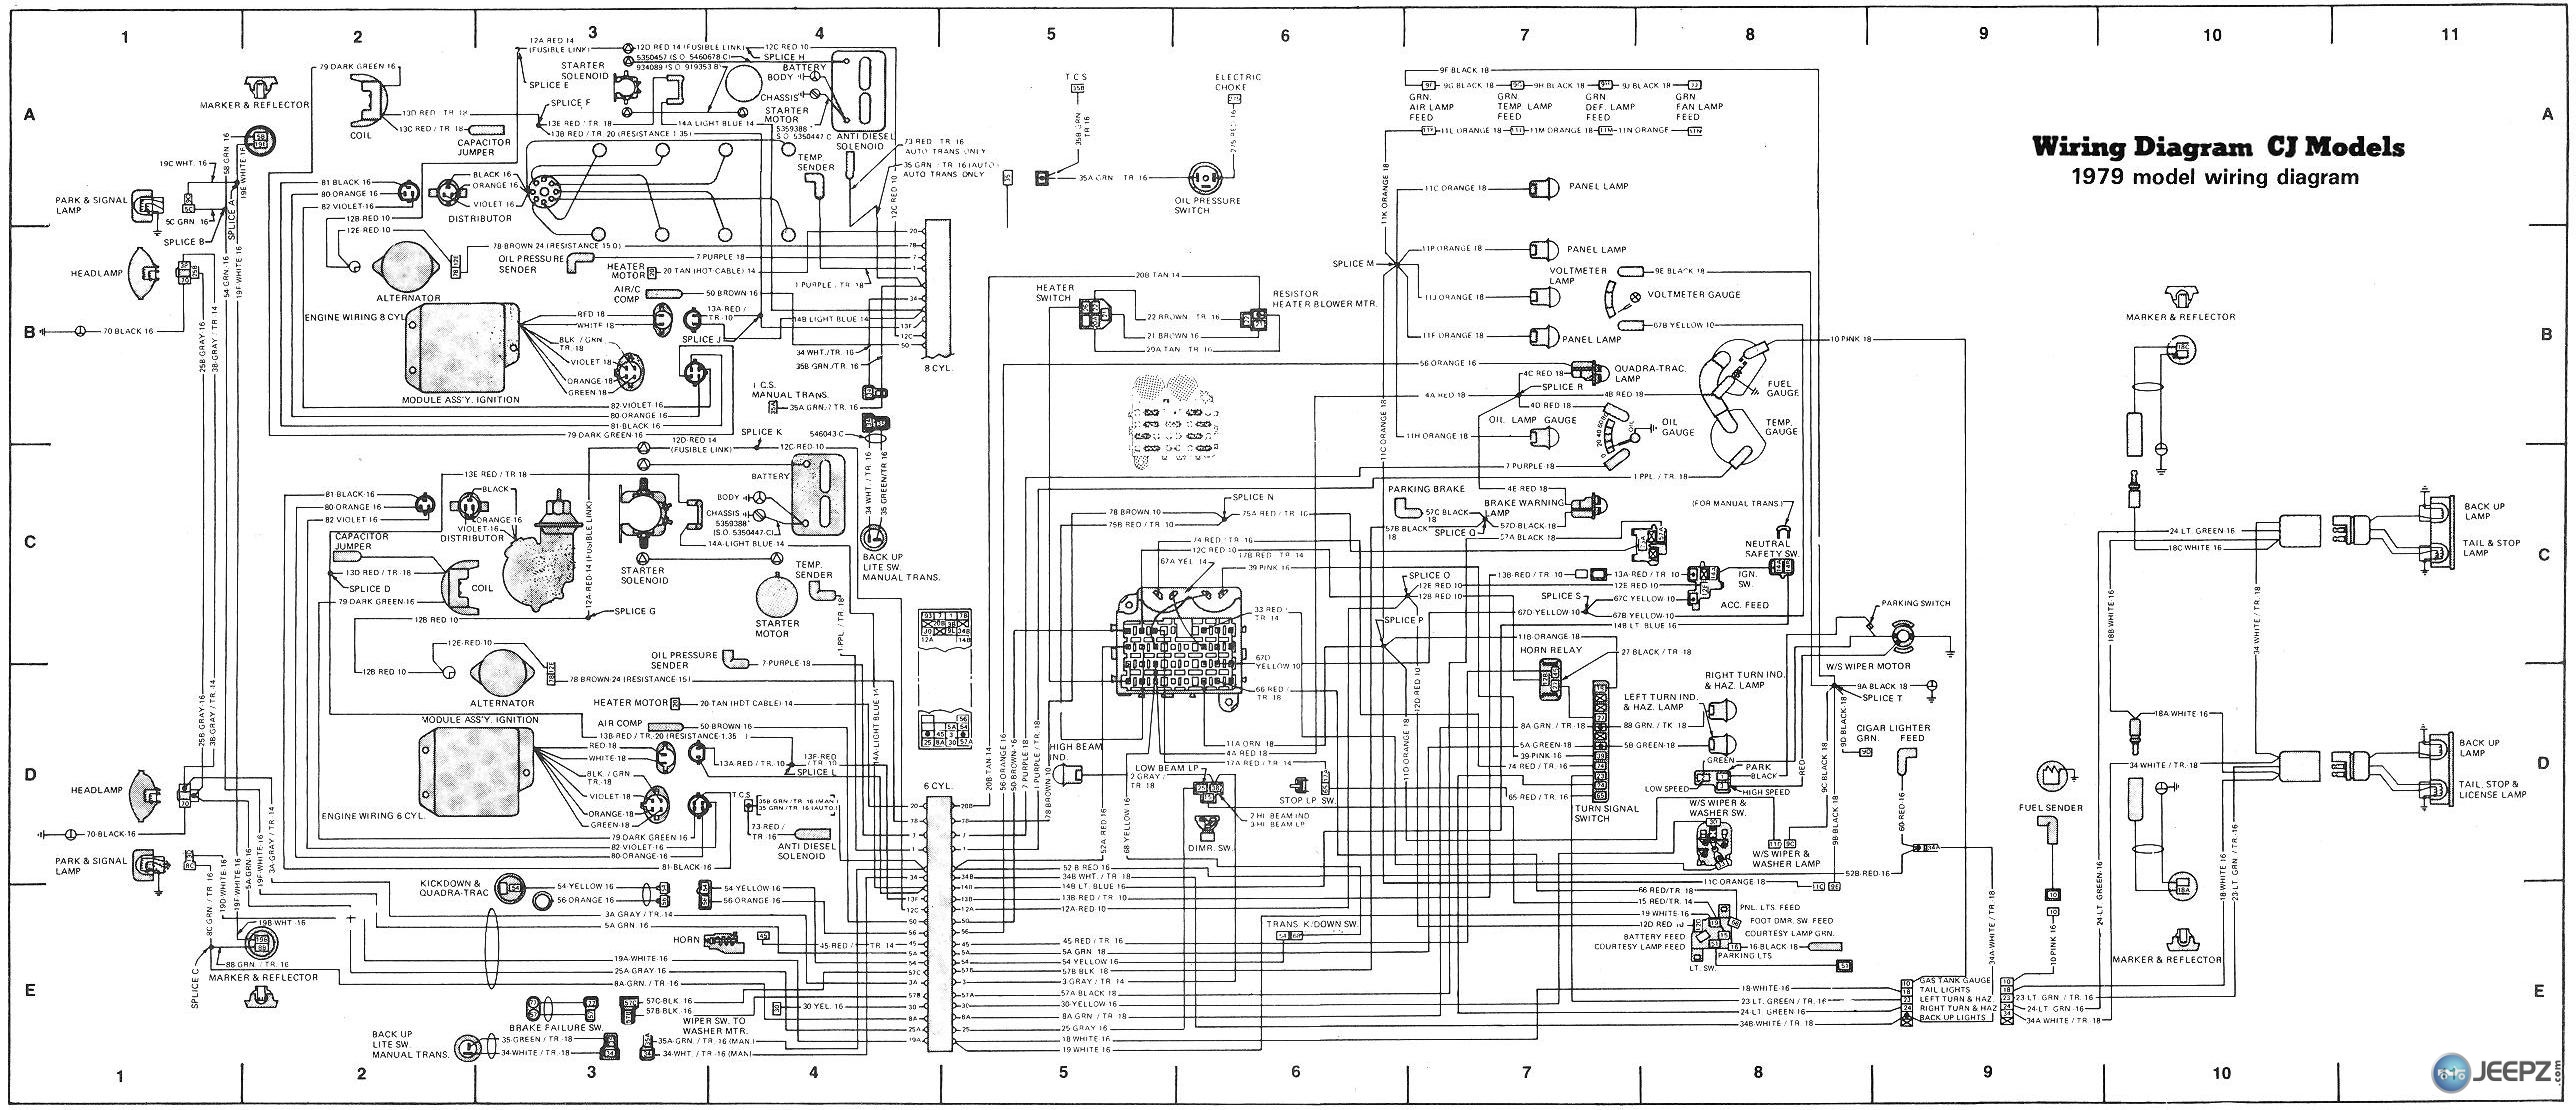 Free Corvette Wiring Diagram 1983 Diy Enthusiasts Diagrams 1977 Schematic Cj7 Electrical House U2022 Rh Universalservices Co 1981